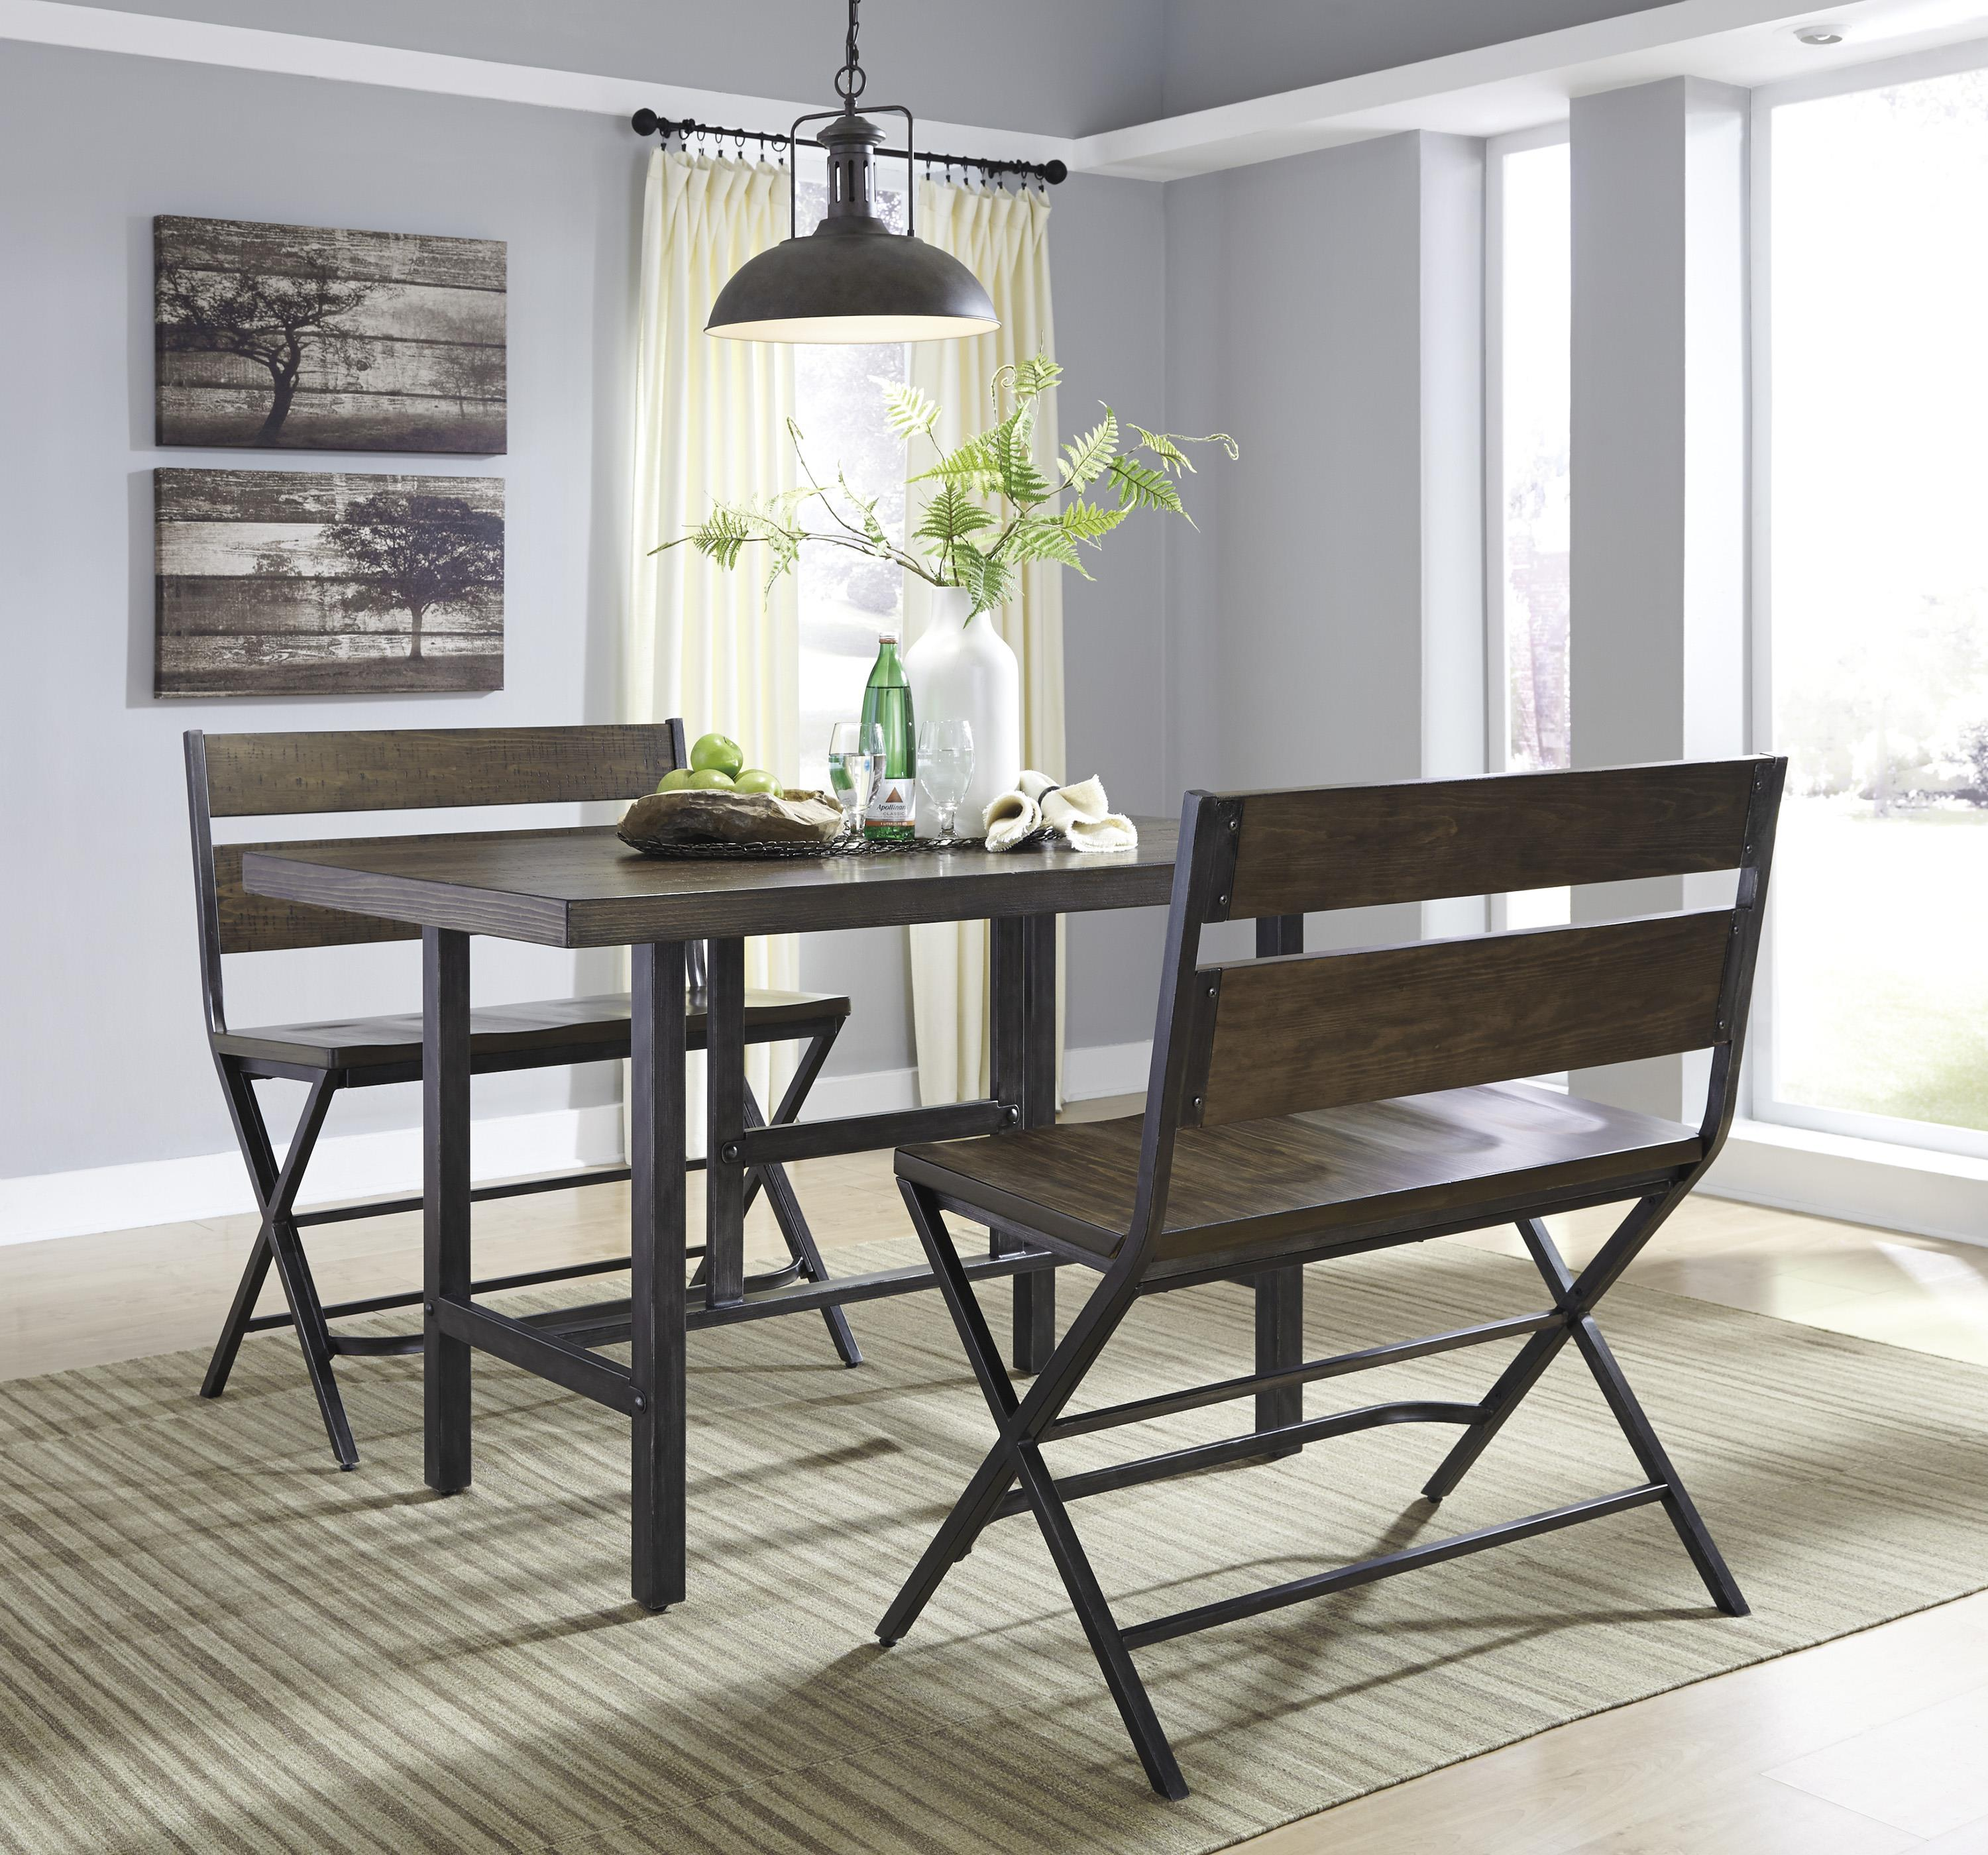 Rectangular Dining Room Tables: Rectangular Dining Room Counter Table W/ Pine Veneers And